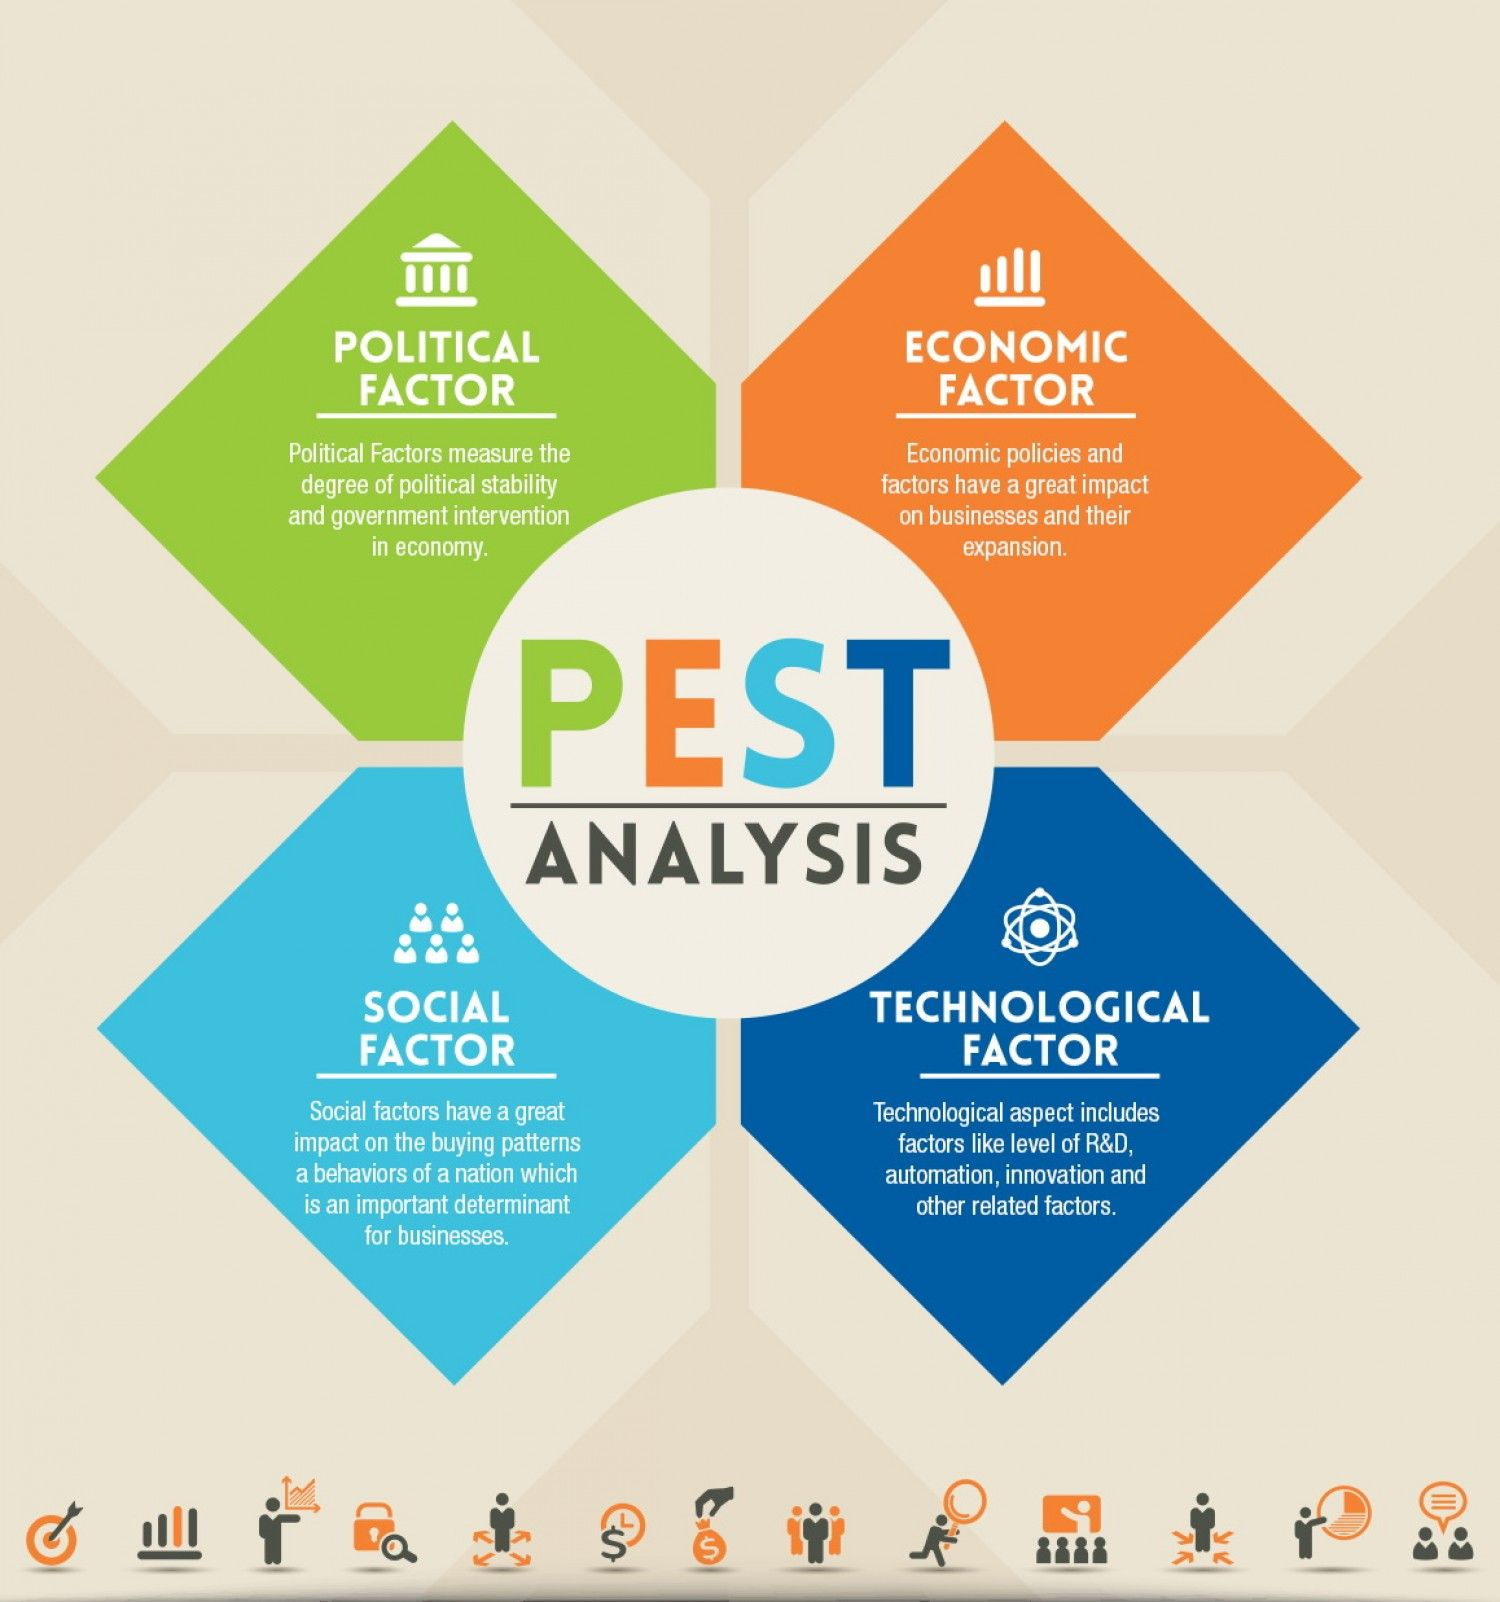 pest analysis on logistics industry Pest analysis on fedex corporation : fedex corporation (nyse: fdx), originally known as fdx corporation, is a logistics services company, based in the.